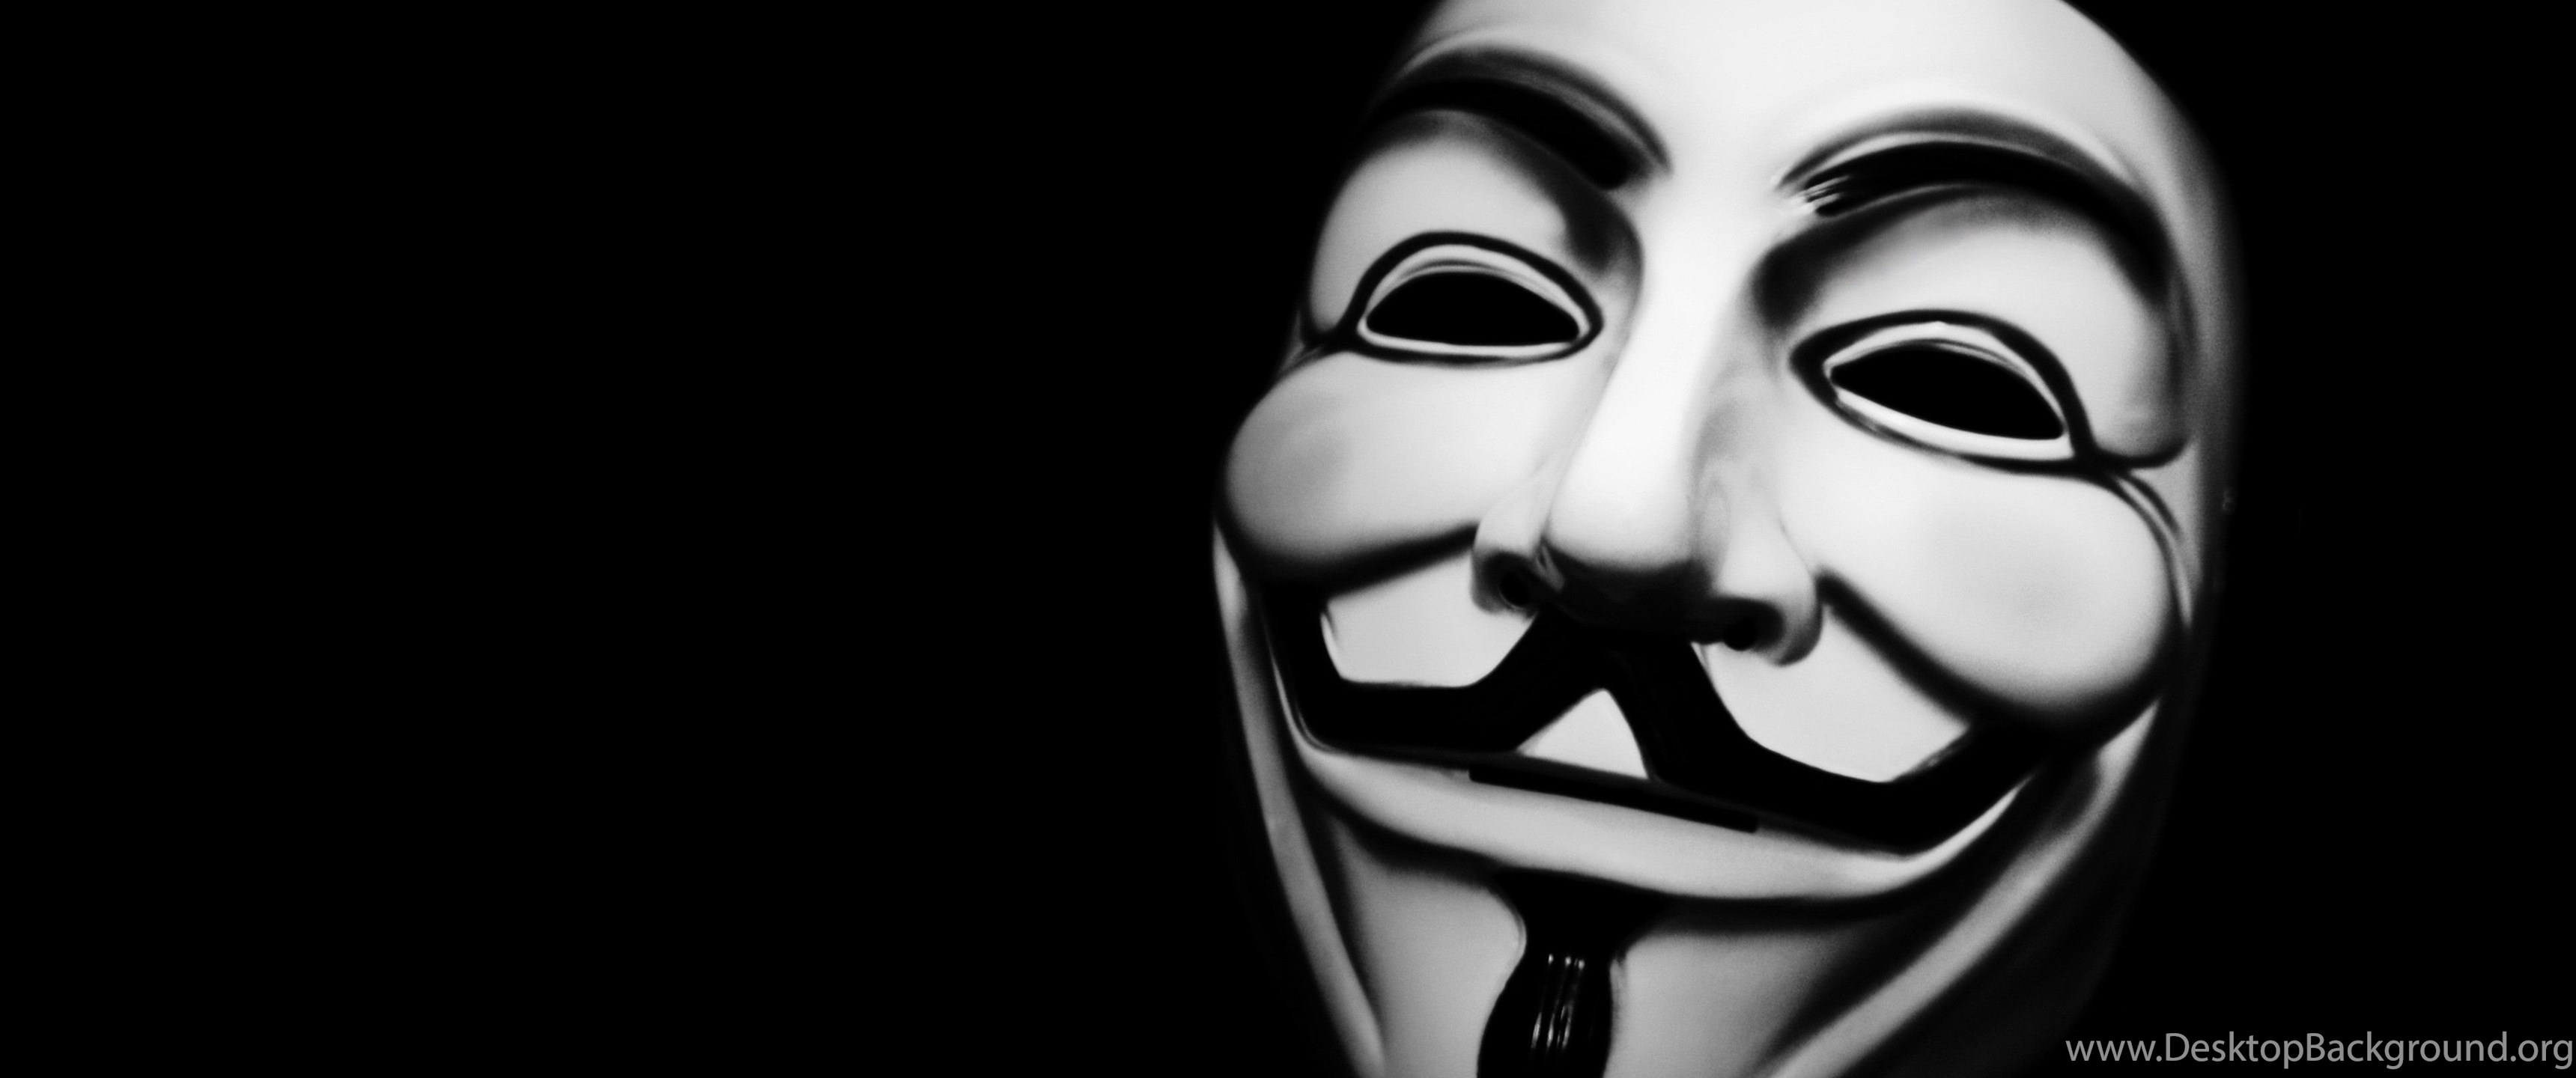 Anonymous V For Vendetta Mask Wallpapers Hd Desktop Background